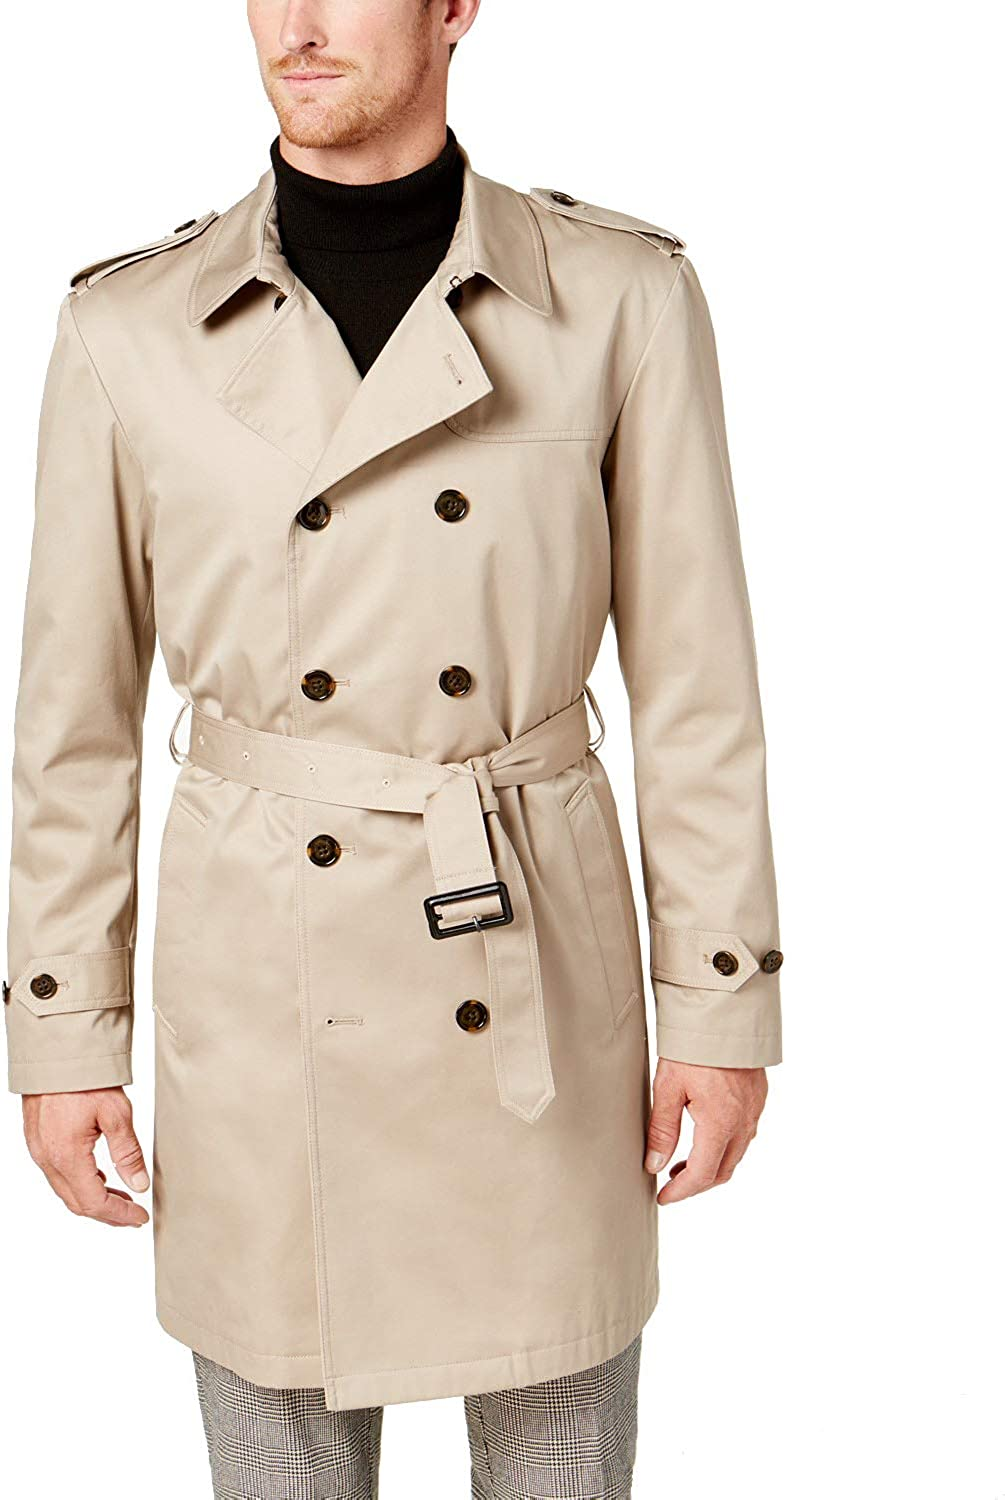 Ralph Lauren Men's LOWRR2JT0001 Double Breasted 3/4 Length Belted Trench Raincoat- Tan - 40L